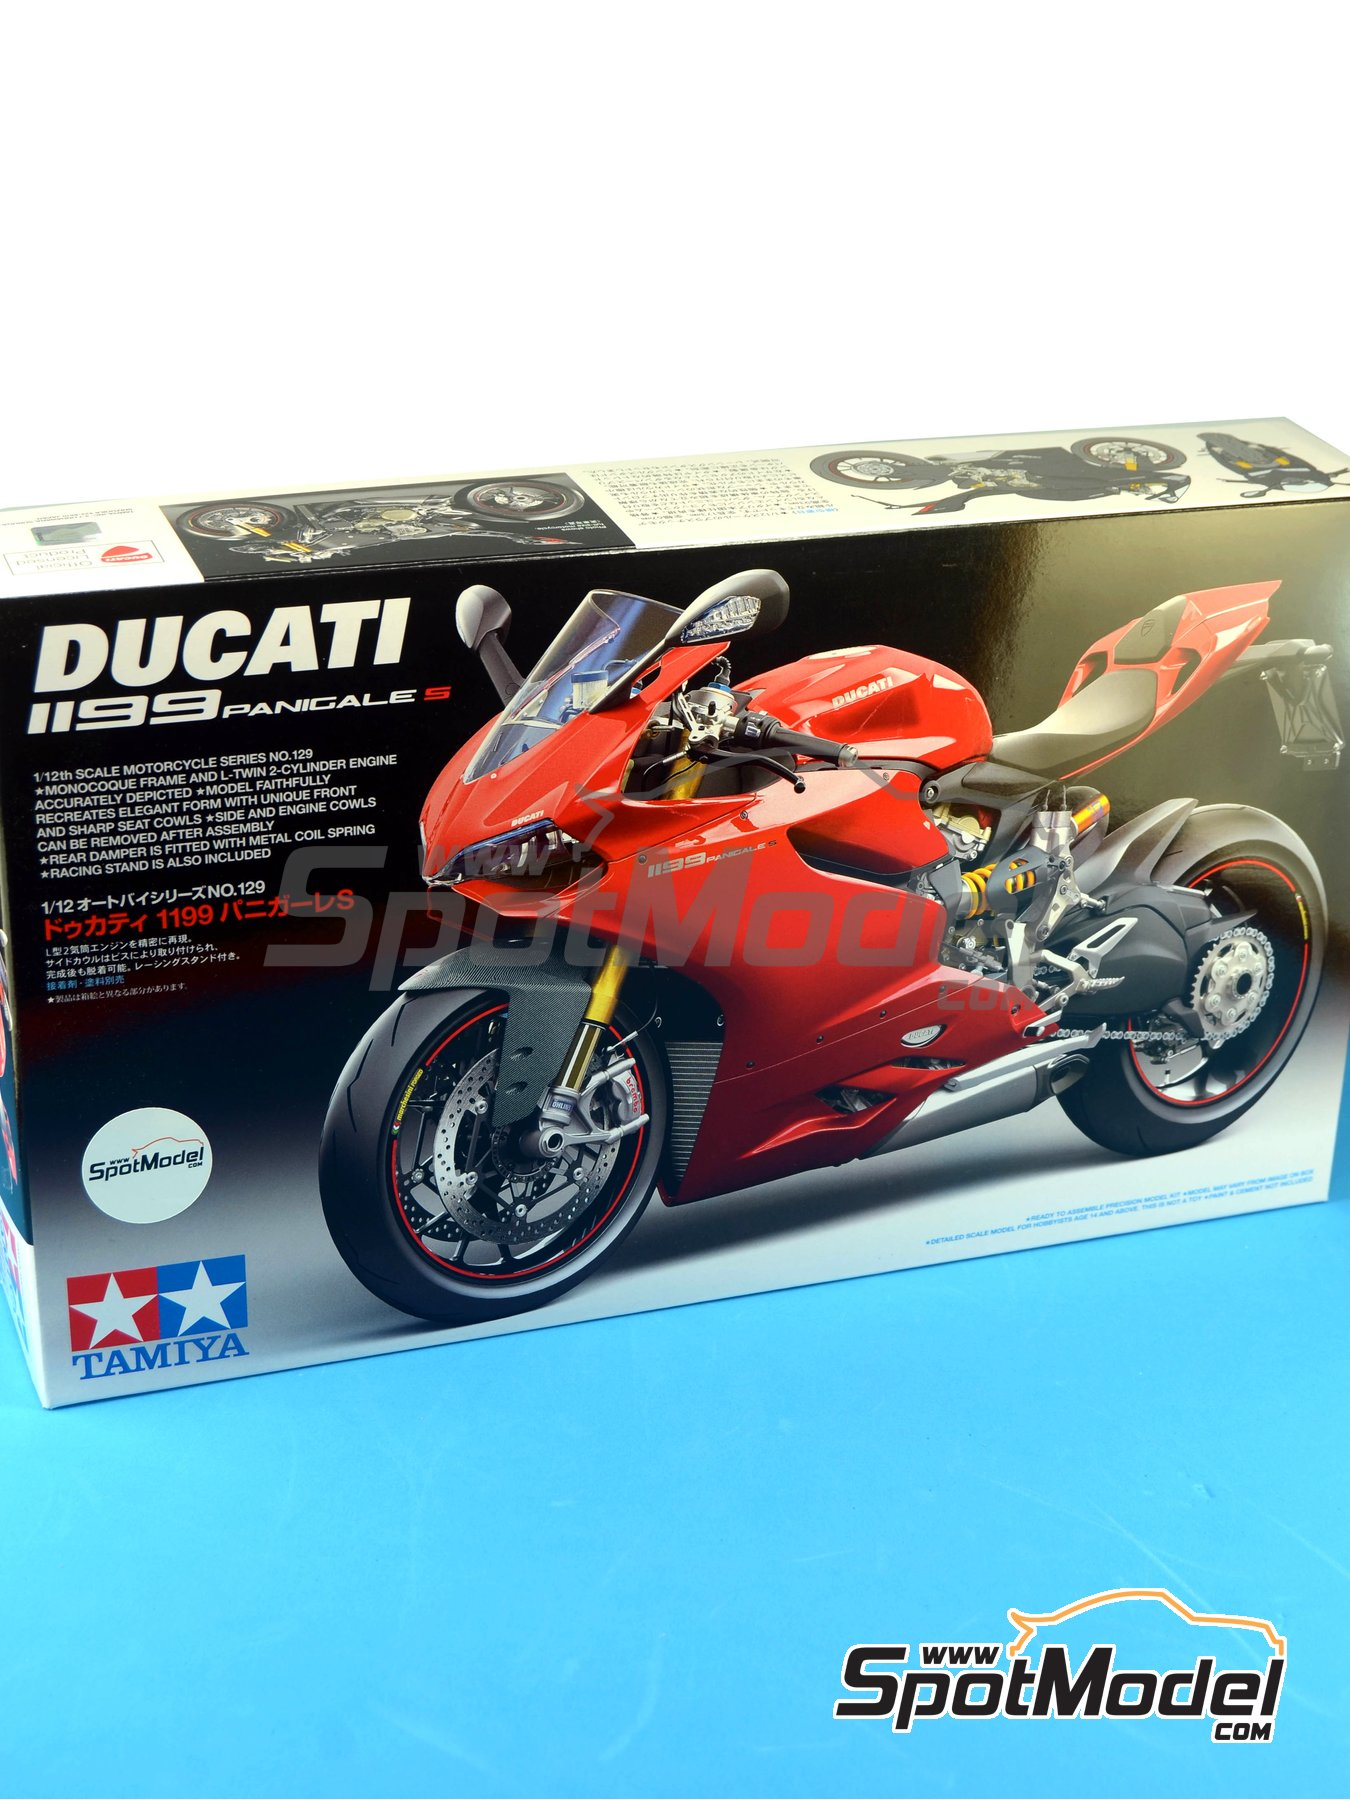 Ducati 1199 Panigale S   Model bike kit in 1/12 scale manufactured by Tamiya (ref.TAM14129, also 14129) image